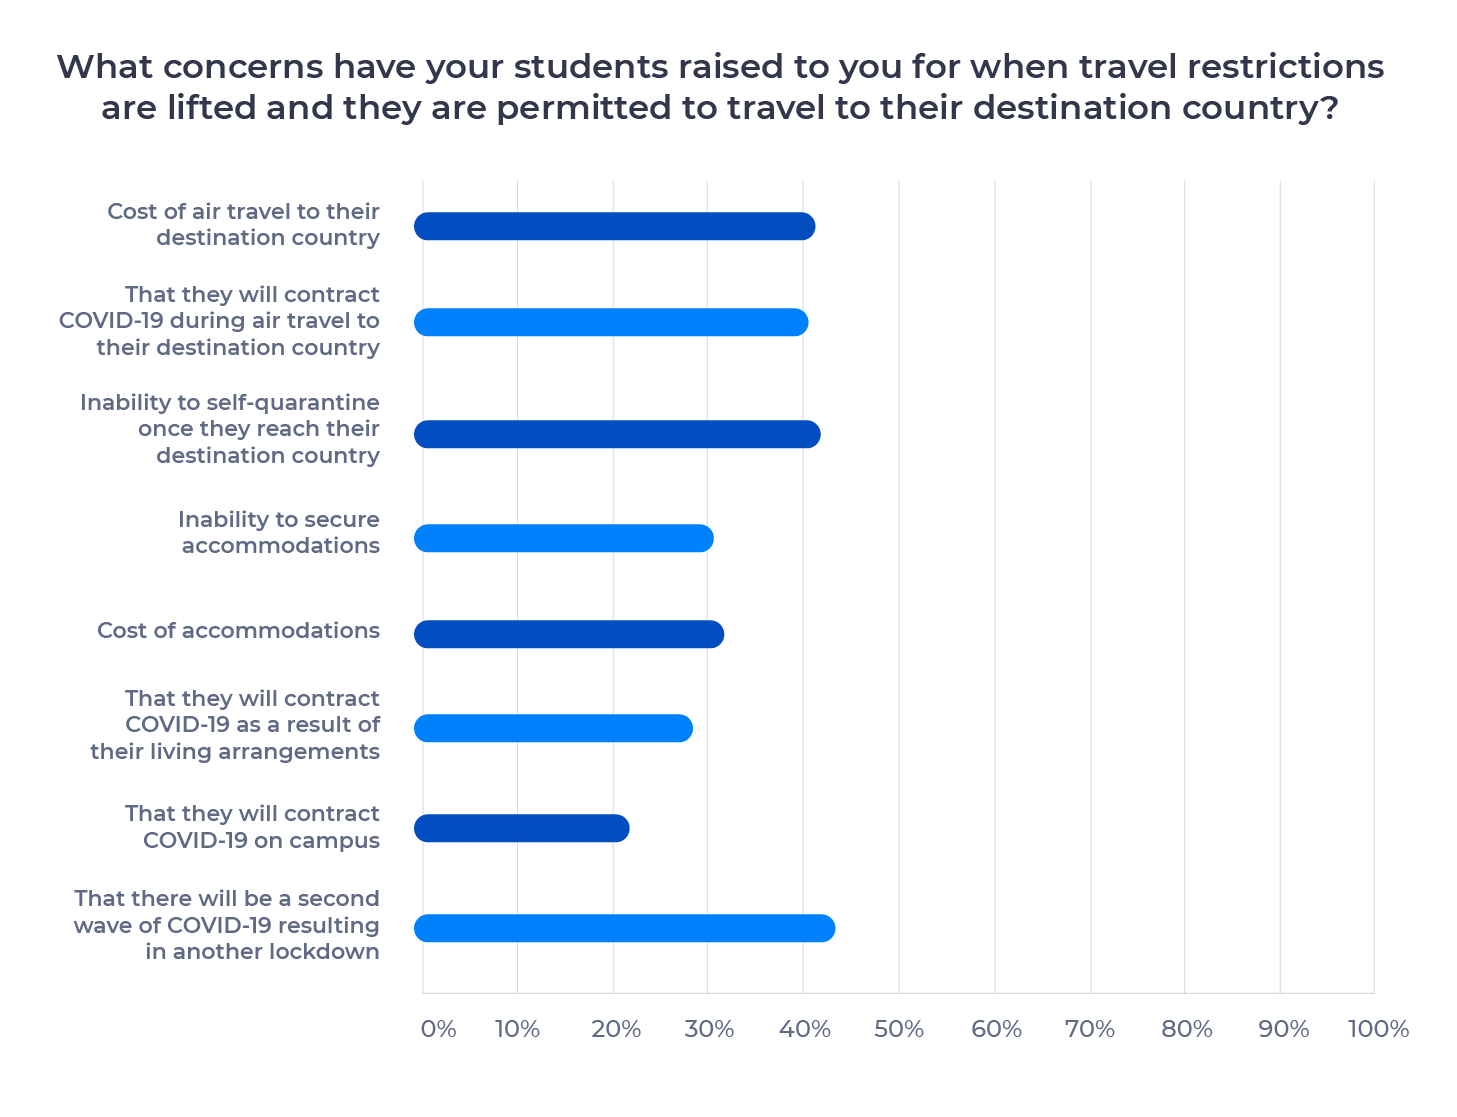 Bar chart showing concerns international students have for when travel restrictions are lifted. Described in detail below.